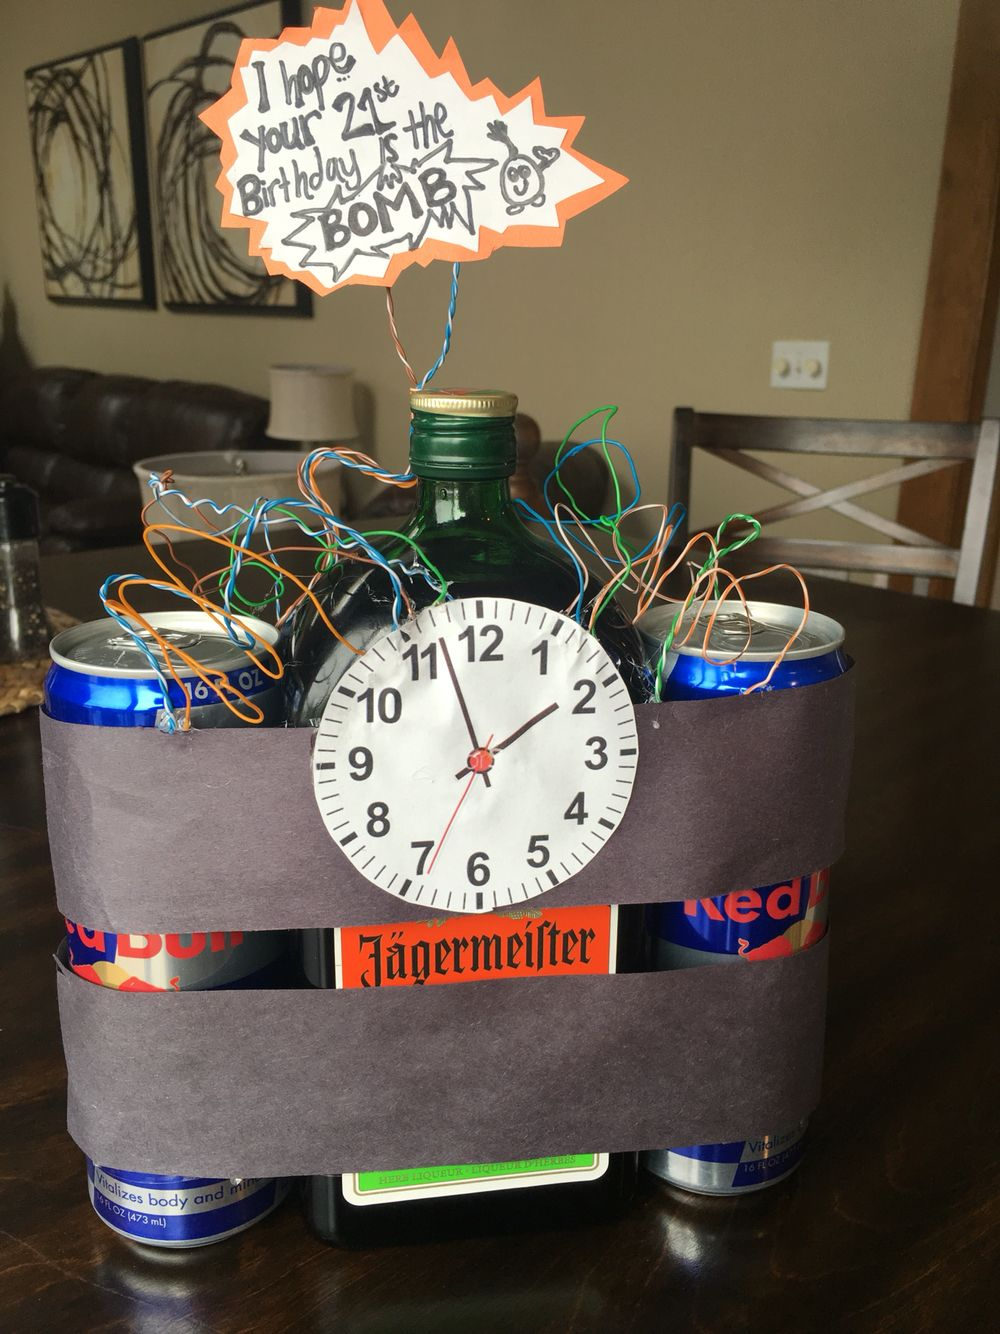 Boyfriends 21st birthday idea j ger bombs creative for Presents for boyfriends birthday